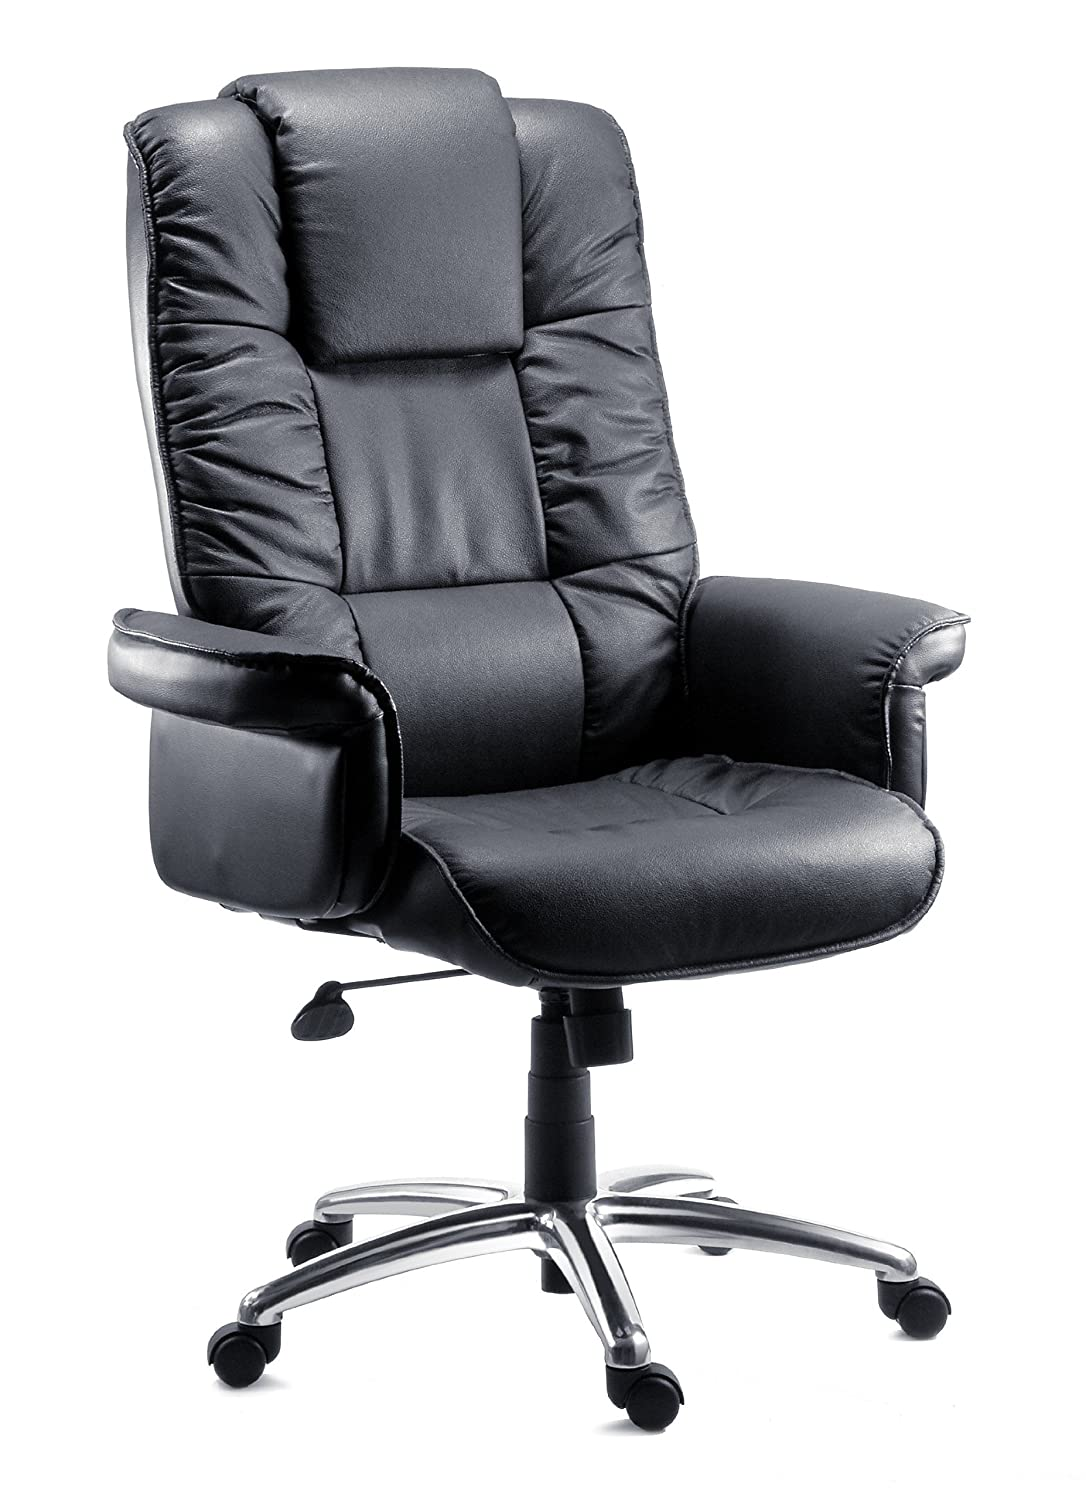 luxury leather office chair. teknik lombard leather executive chair soft fill upholstery amazoncouk office products luxury s